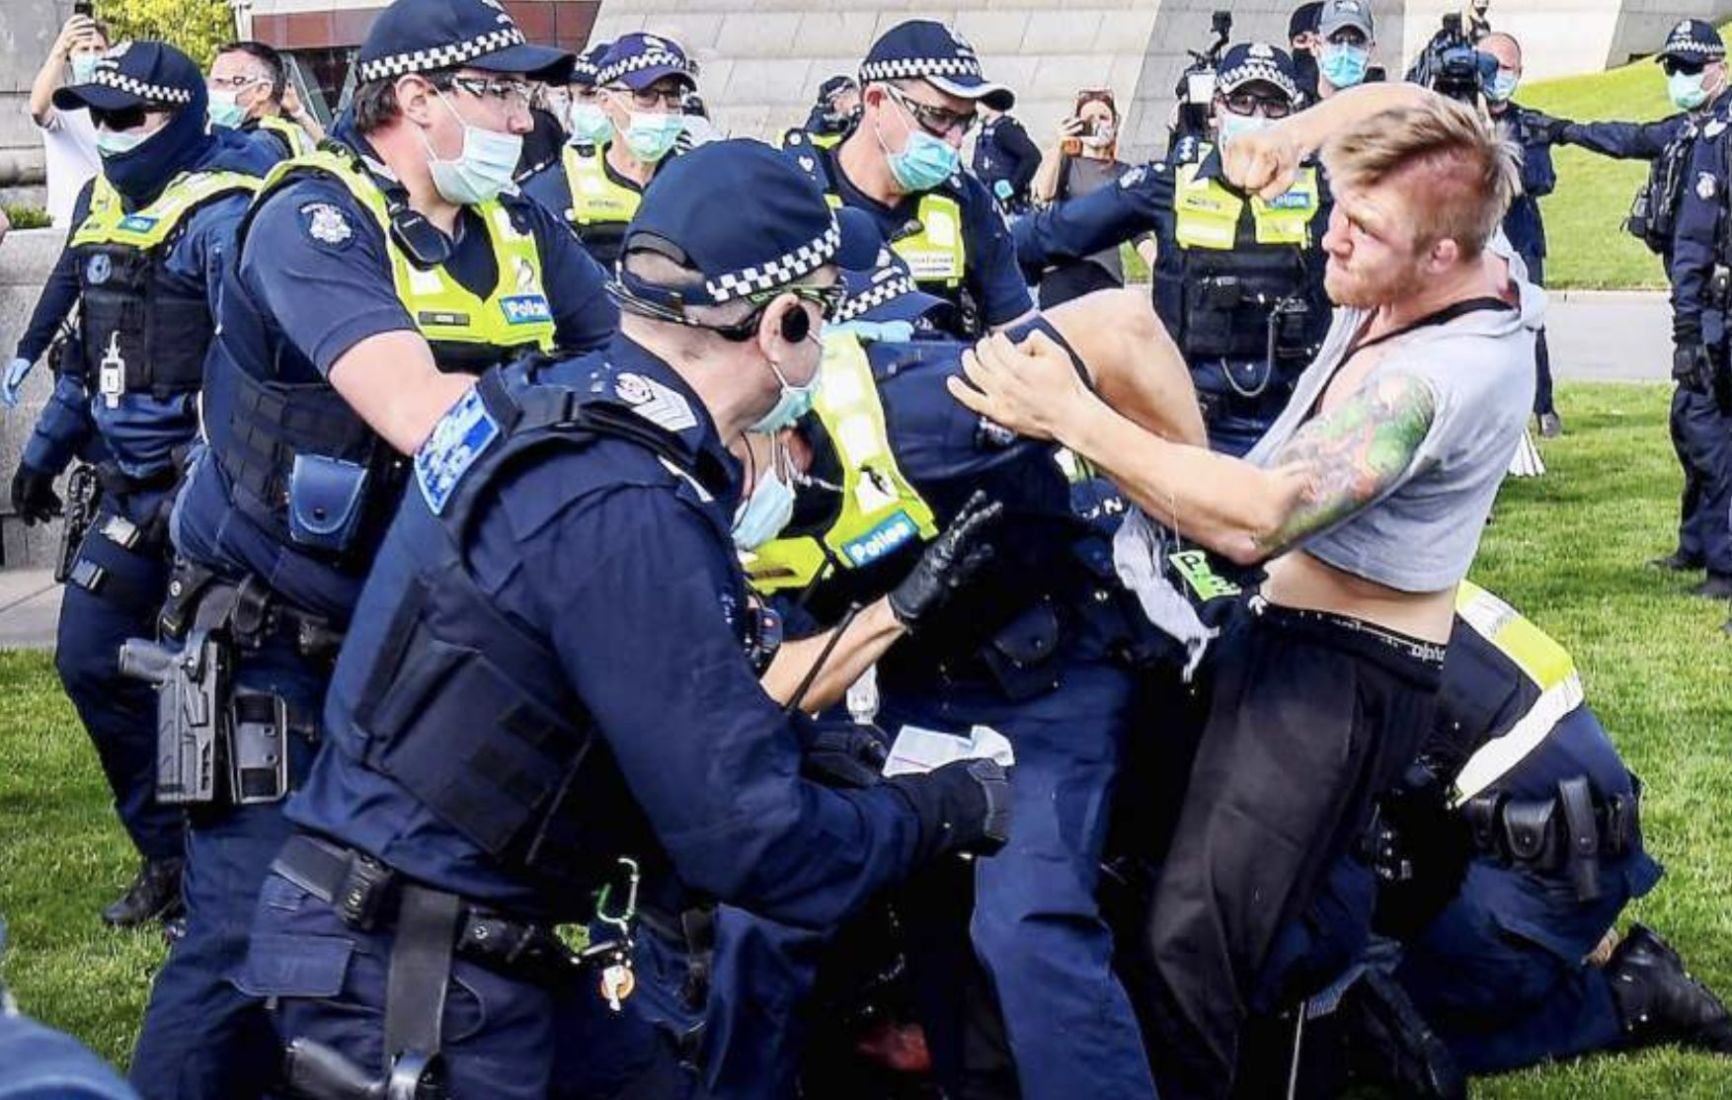 100s of protesters defy orders, arrests at Melbourne demonstrations | Thaiger